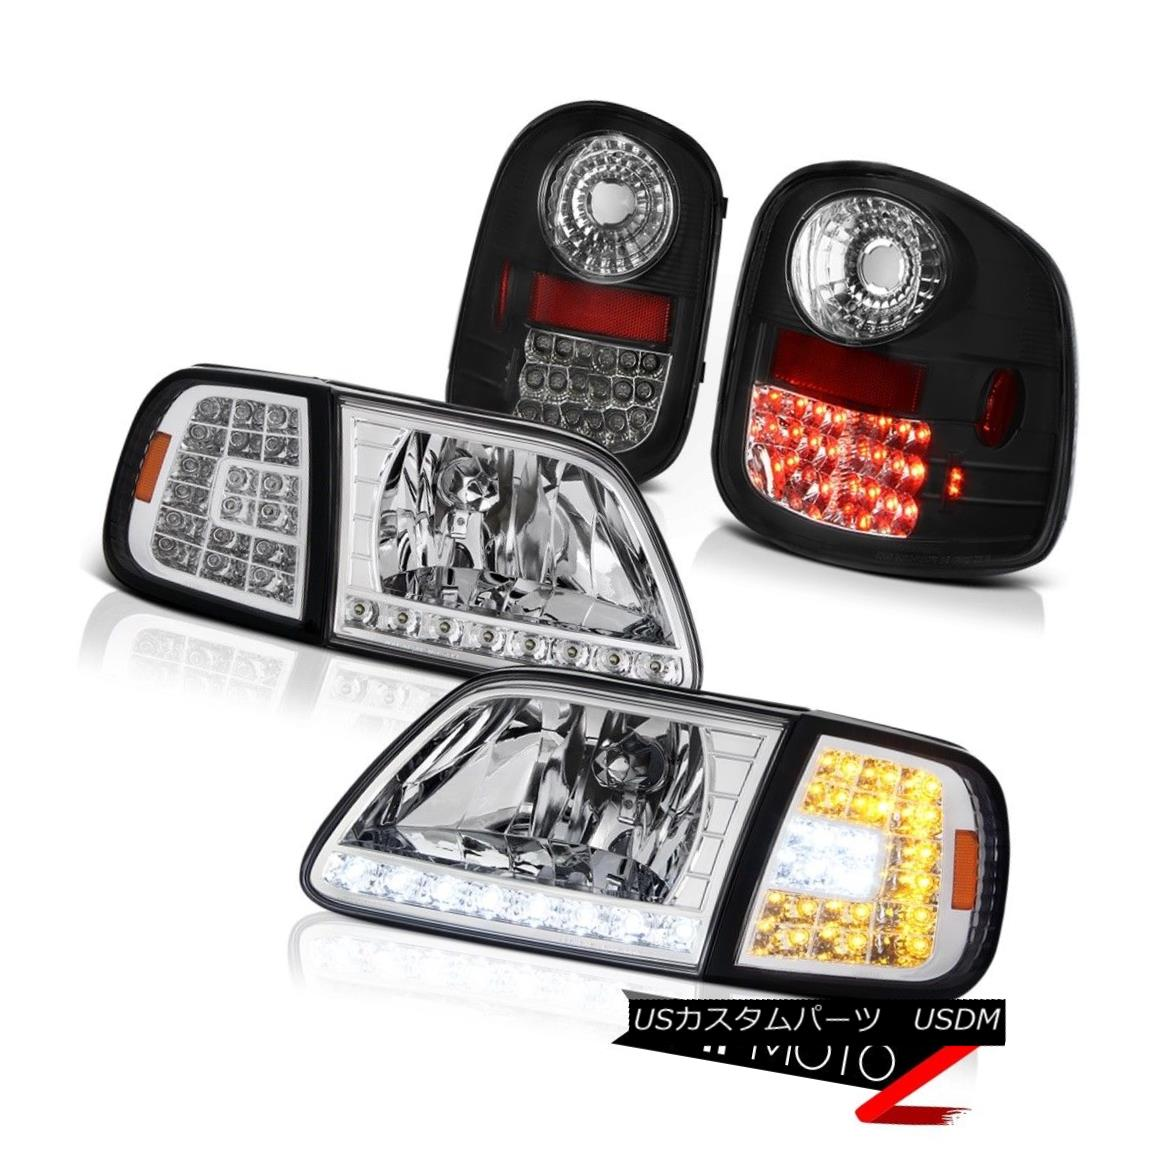 テールライト LED Signal Headlamps Bright Tail Lights 1997-2003 Ford F150 Flareside Lightning LED信号ヘッドライトブライトテールライト1997-2003 Ford F150 Flareside Lightning